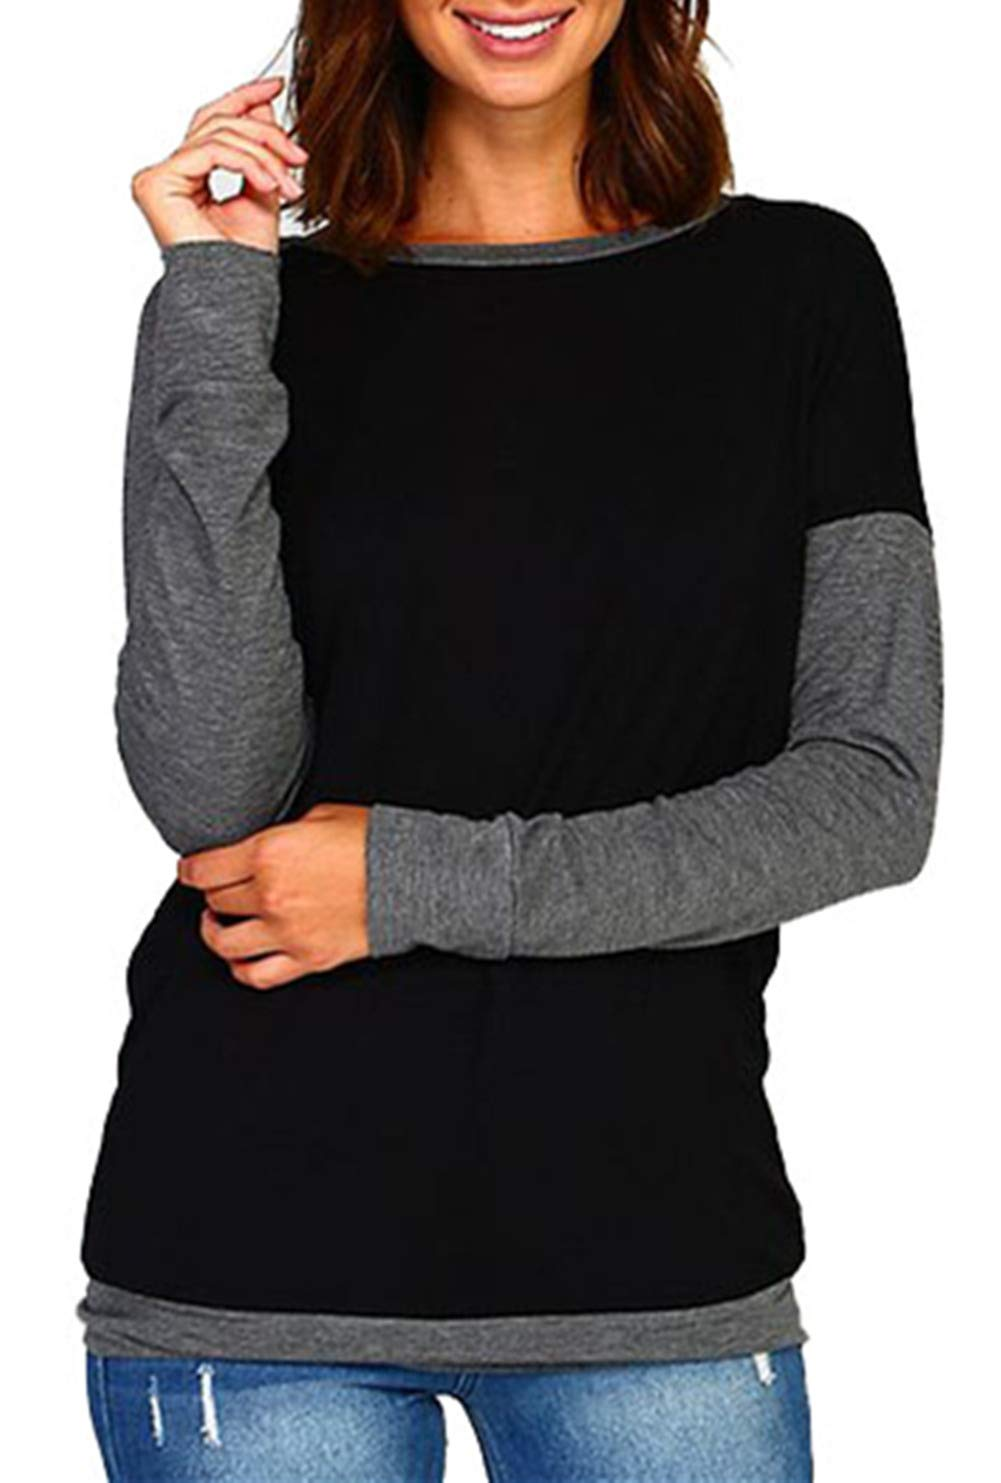 onlypuff Women's Casual Solid T-Shirt Batwing Long Sleeve Tunic Tops Round Neck Loose Comfy with Pockets onlypuffYS0015